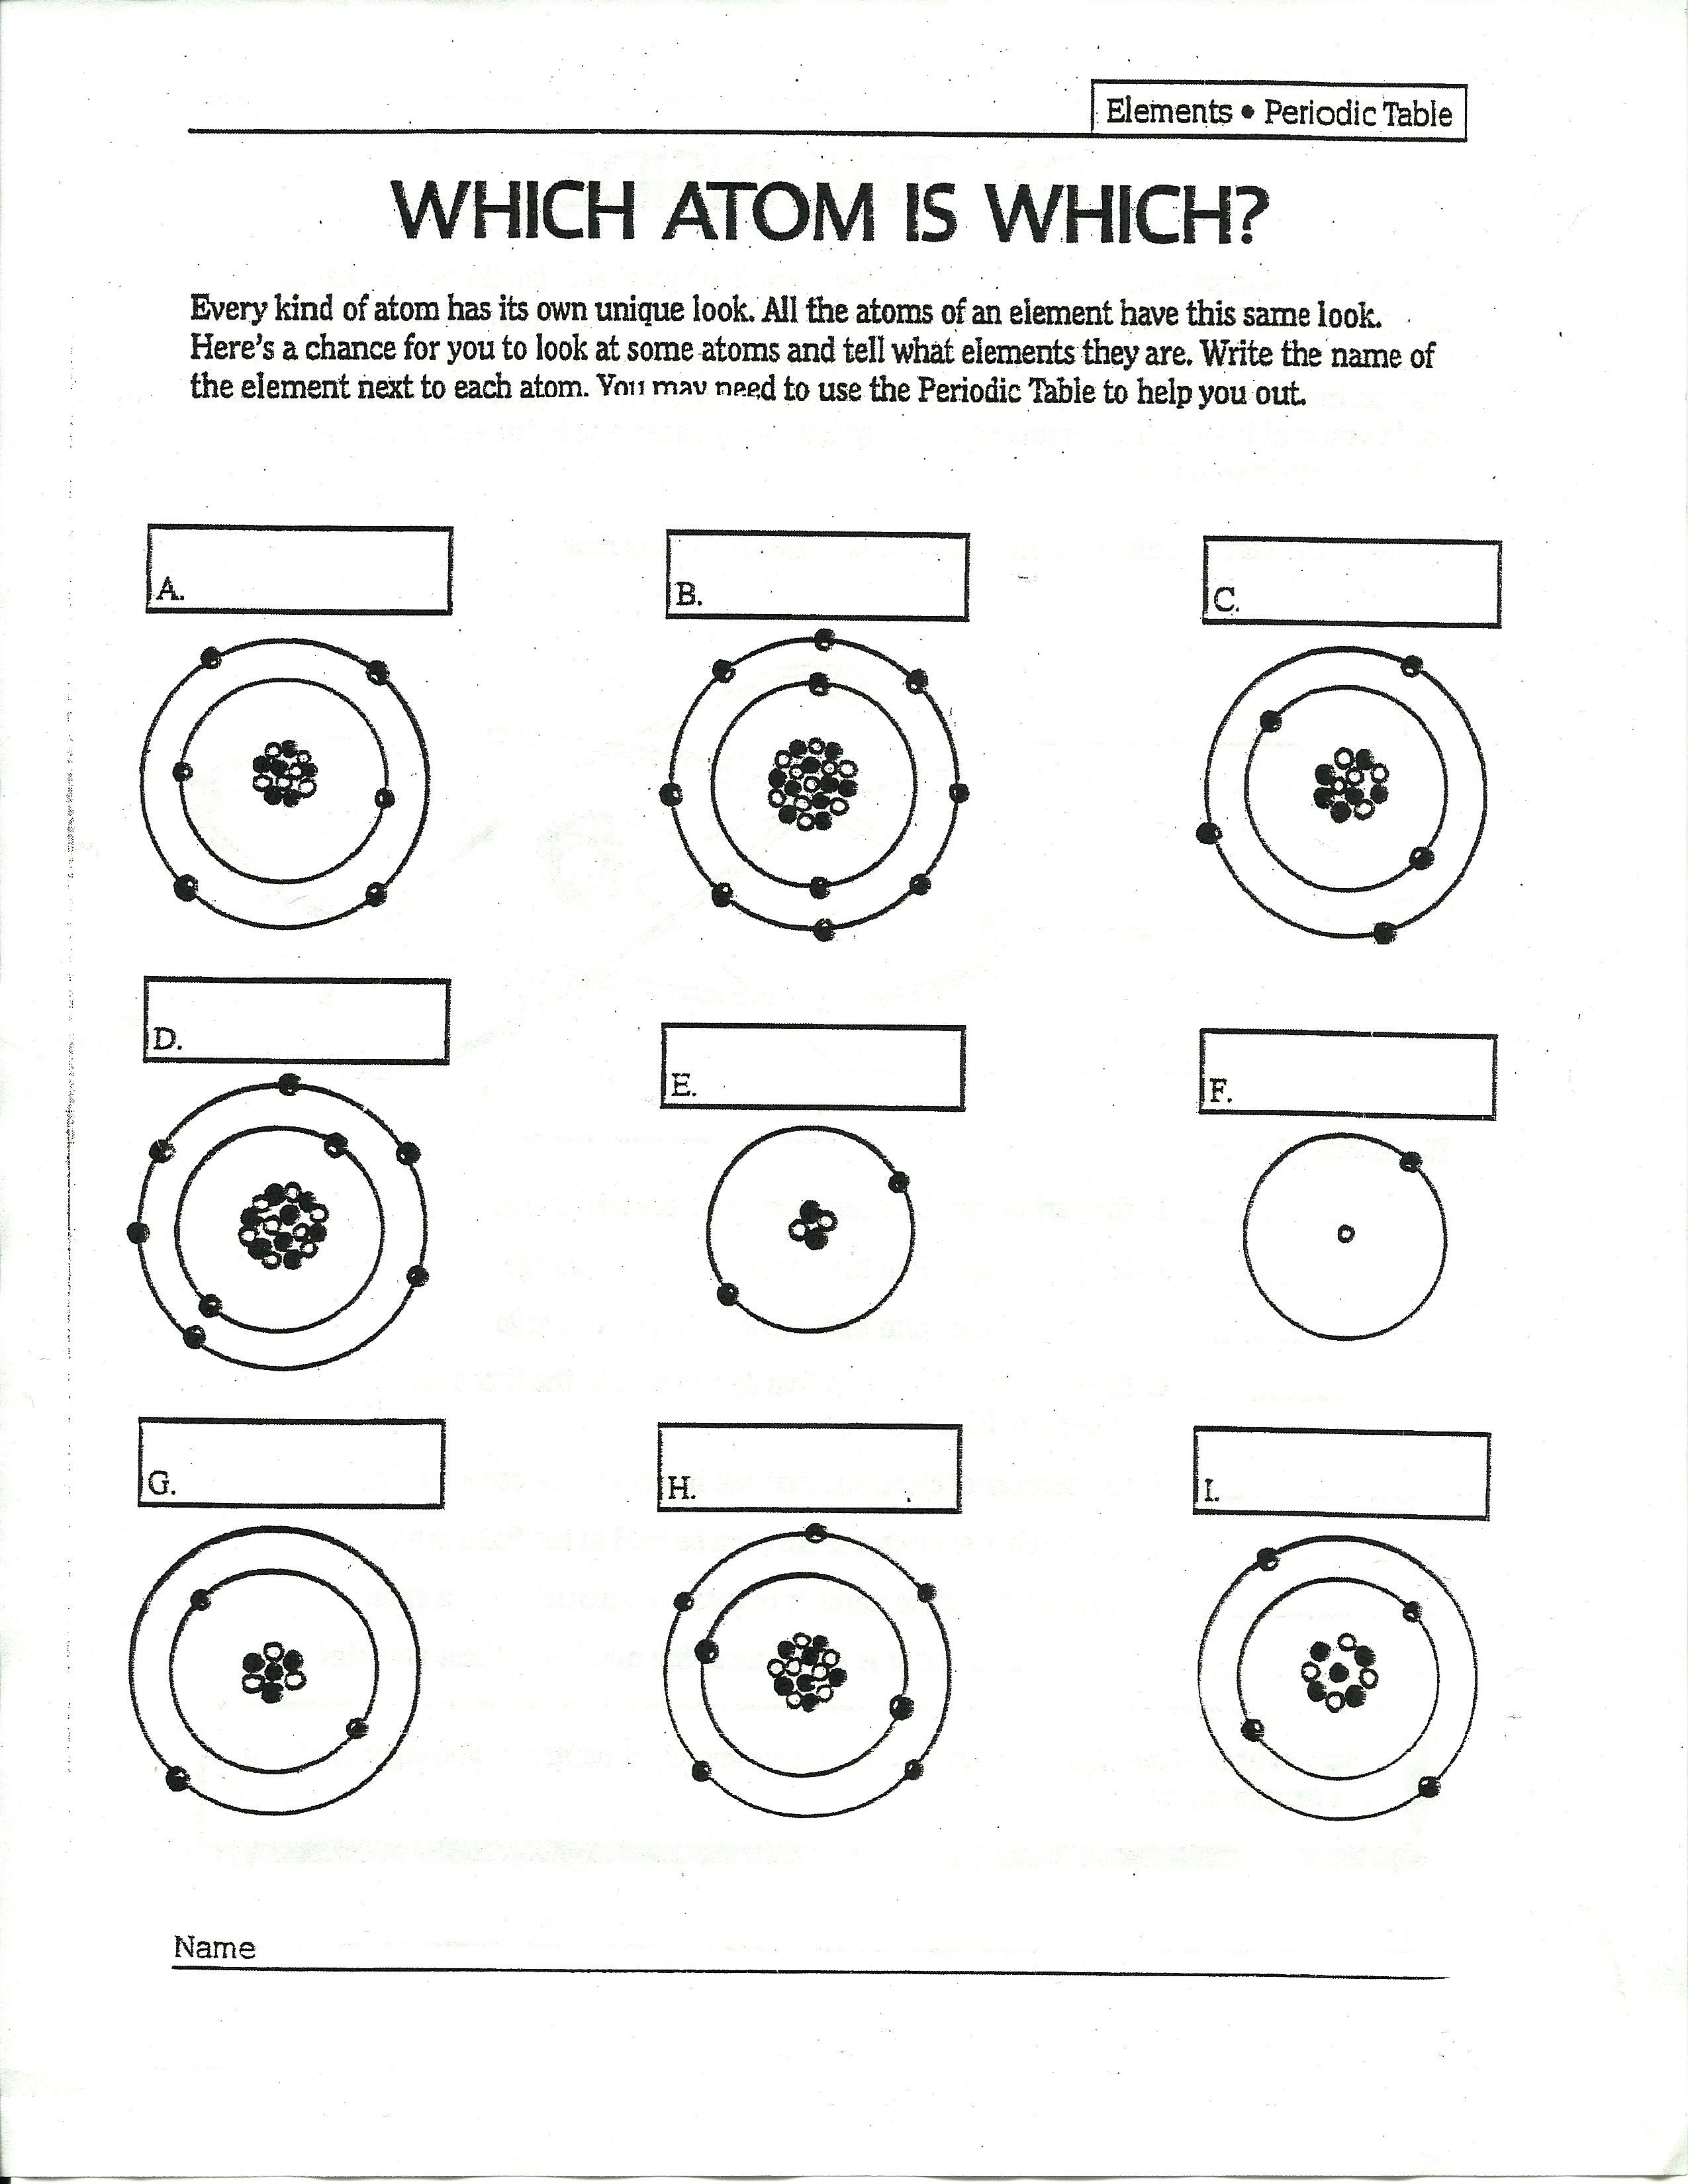 how do you draw a bohr rutherford diagram haulmark trailer wiring model worksheet. worksheets. releaseboard free printable worksheets and activities